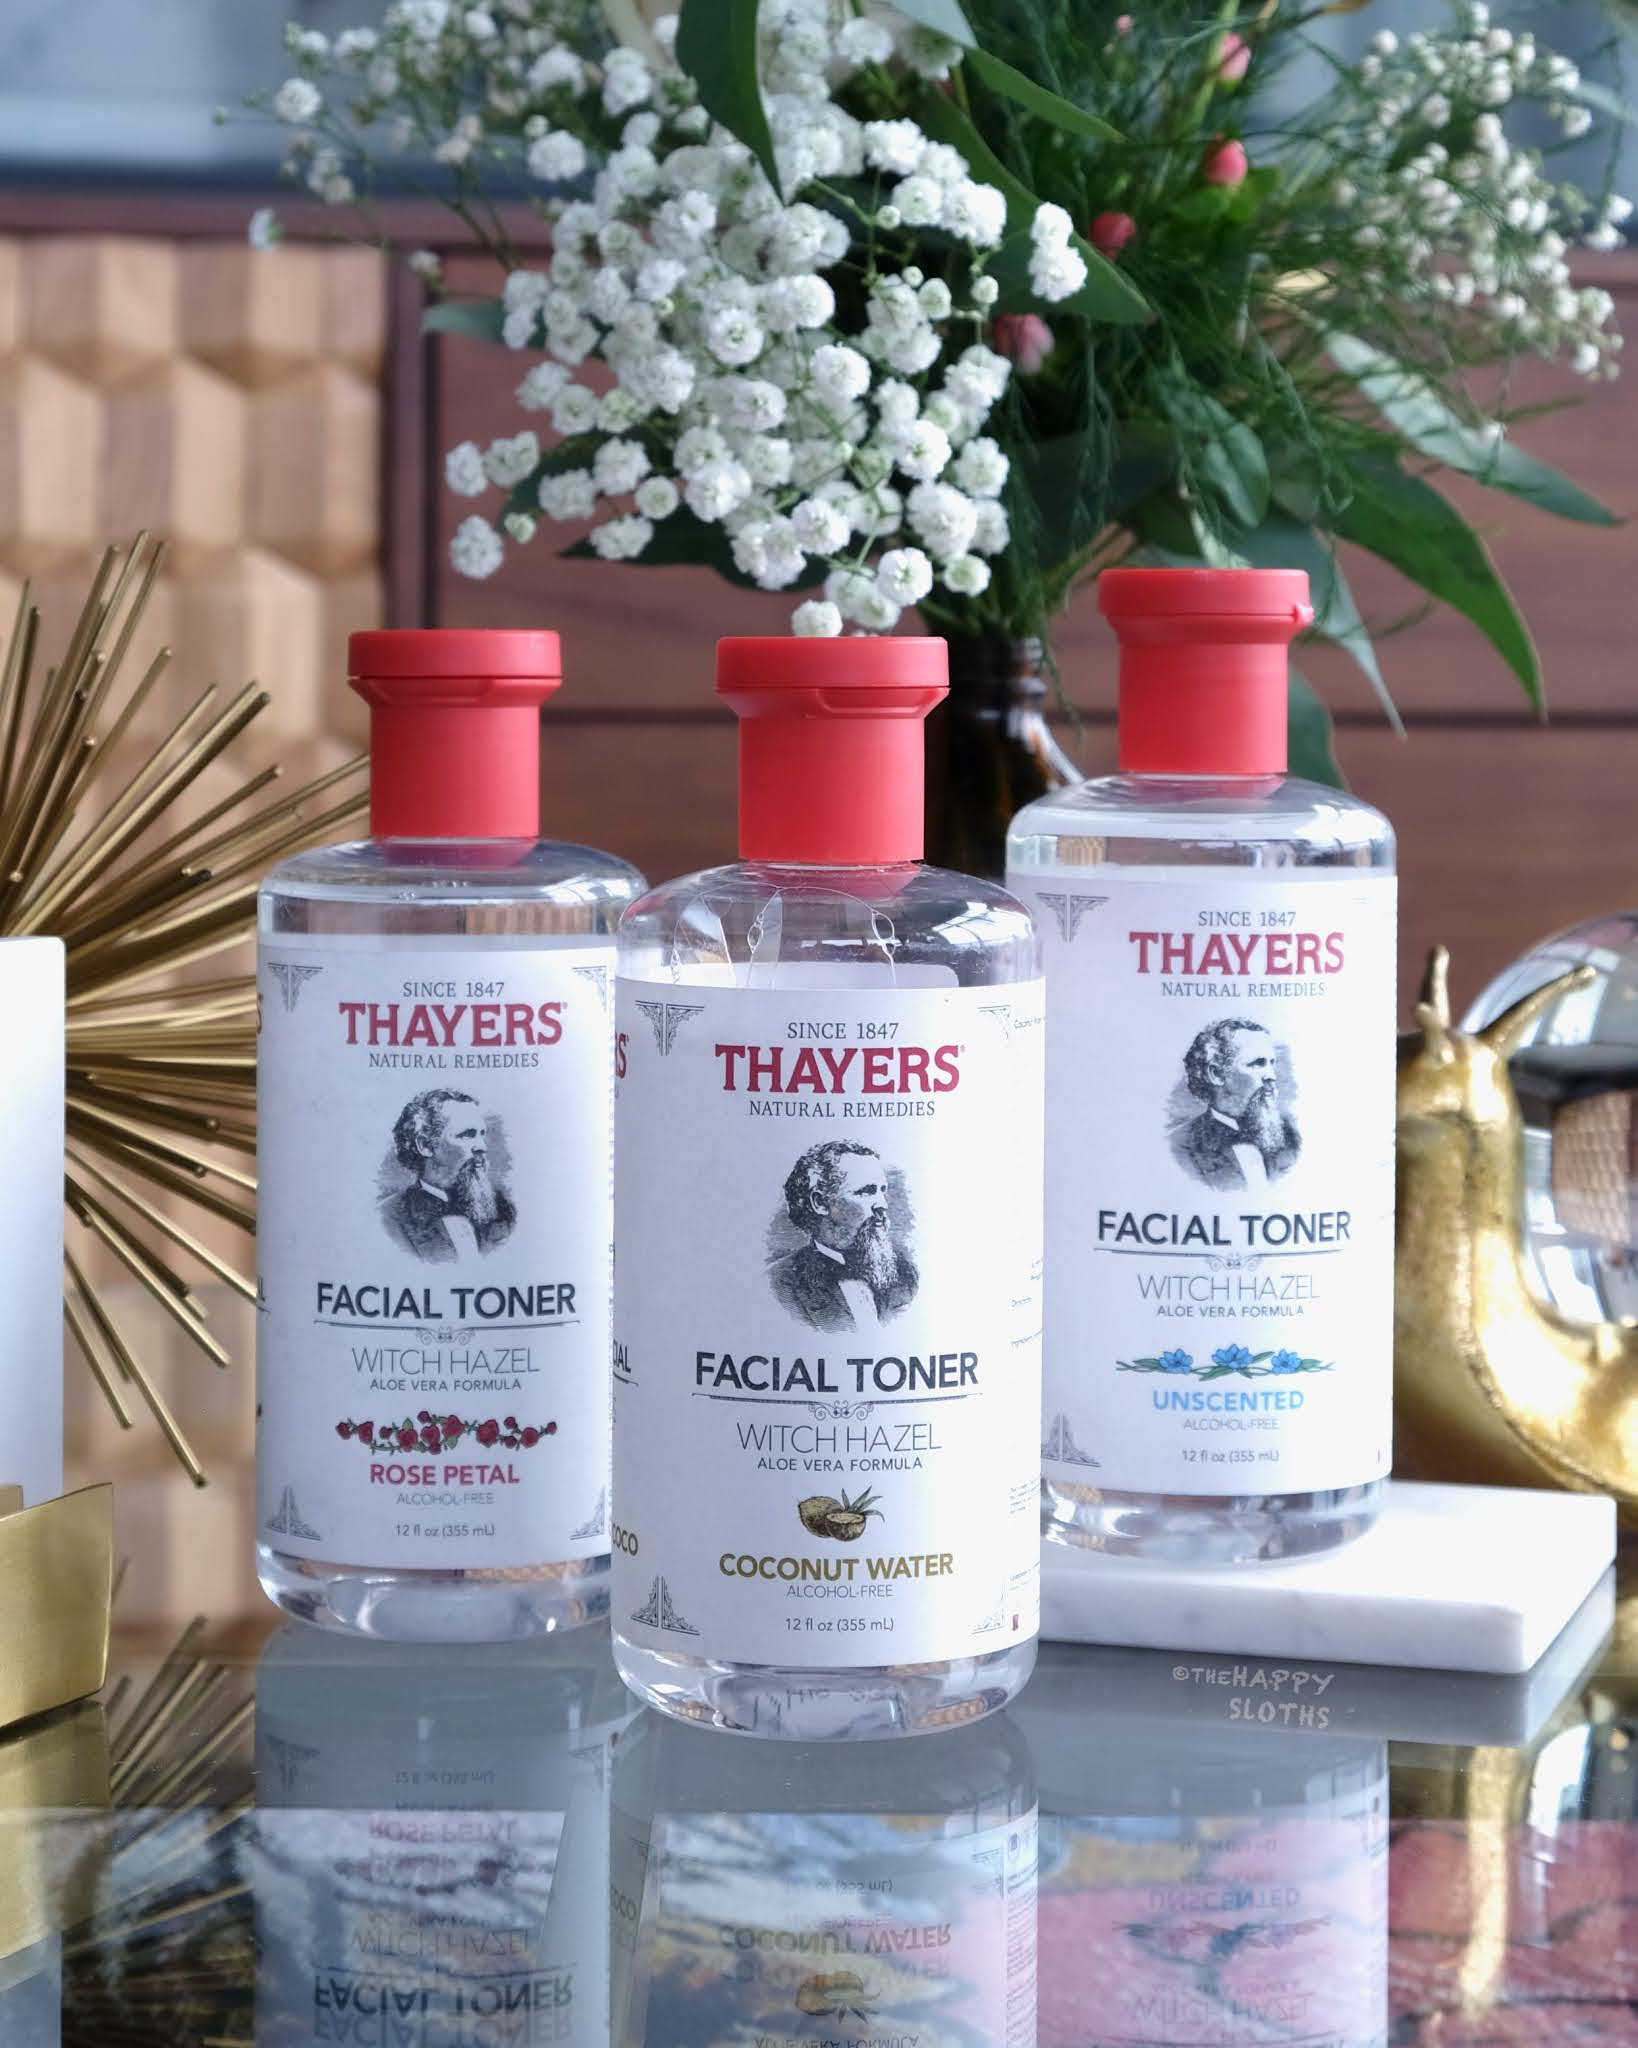 Thayers | Witch Hazel Aloe Vera Formula Toner Rose Petal, Coconut Water & Unscented: Review